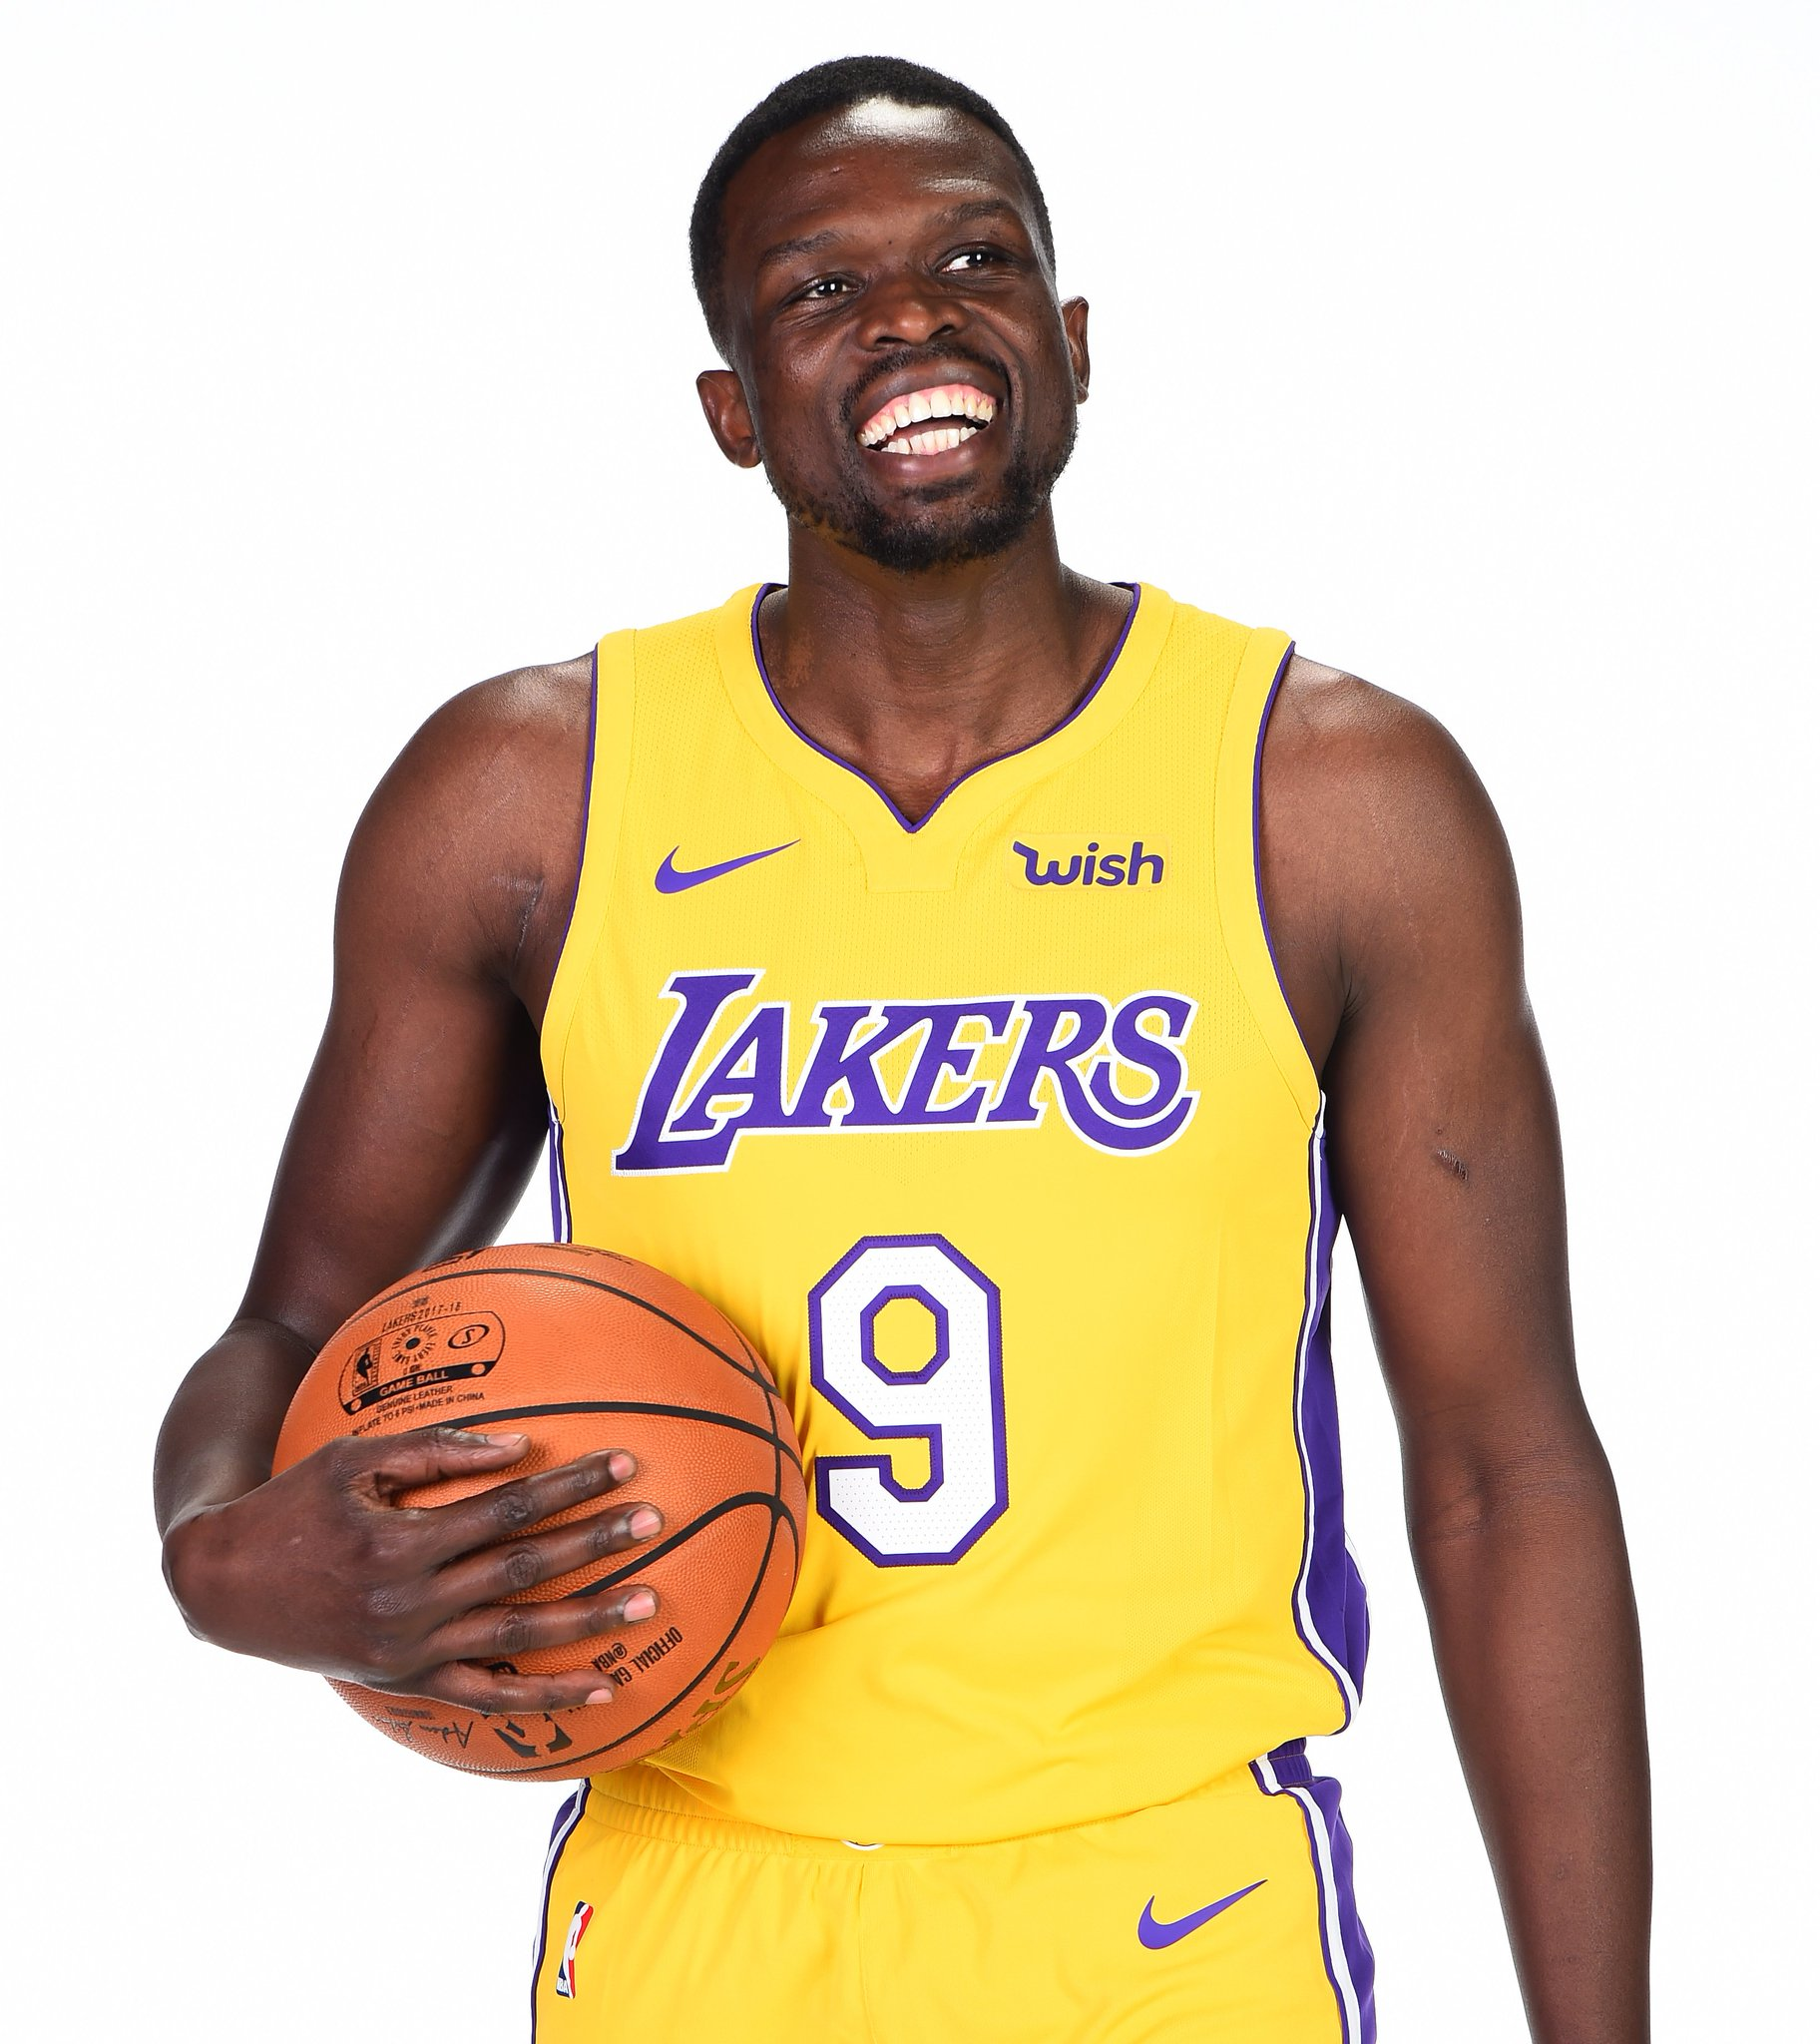 Join us in wishing @LuolDeng9 of the @Lakers a HAPPY 33rd BIRTHDAY!   #NBABDAY #LakeShow https://t.co/2lSLBZu4eP